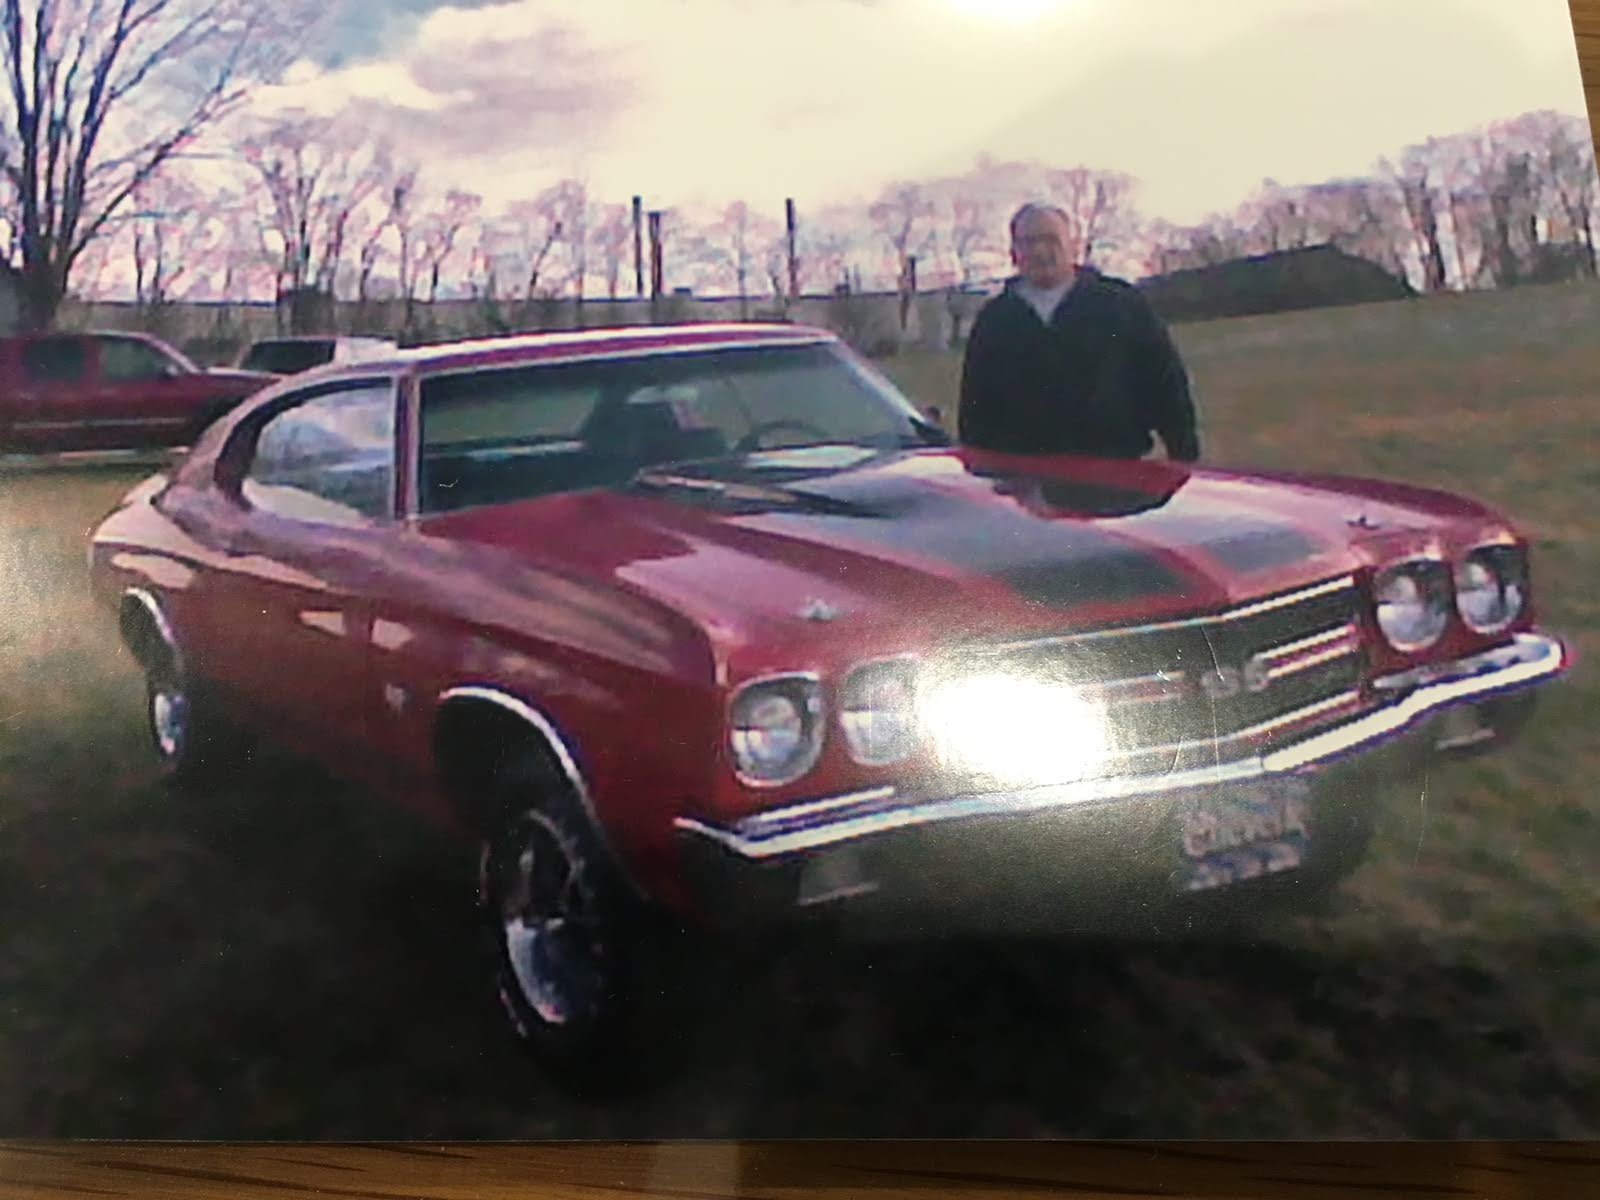 Chevrolet Chevelle Questions - 1970 Chevelle SS with cowl induction